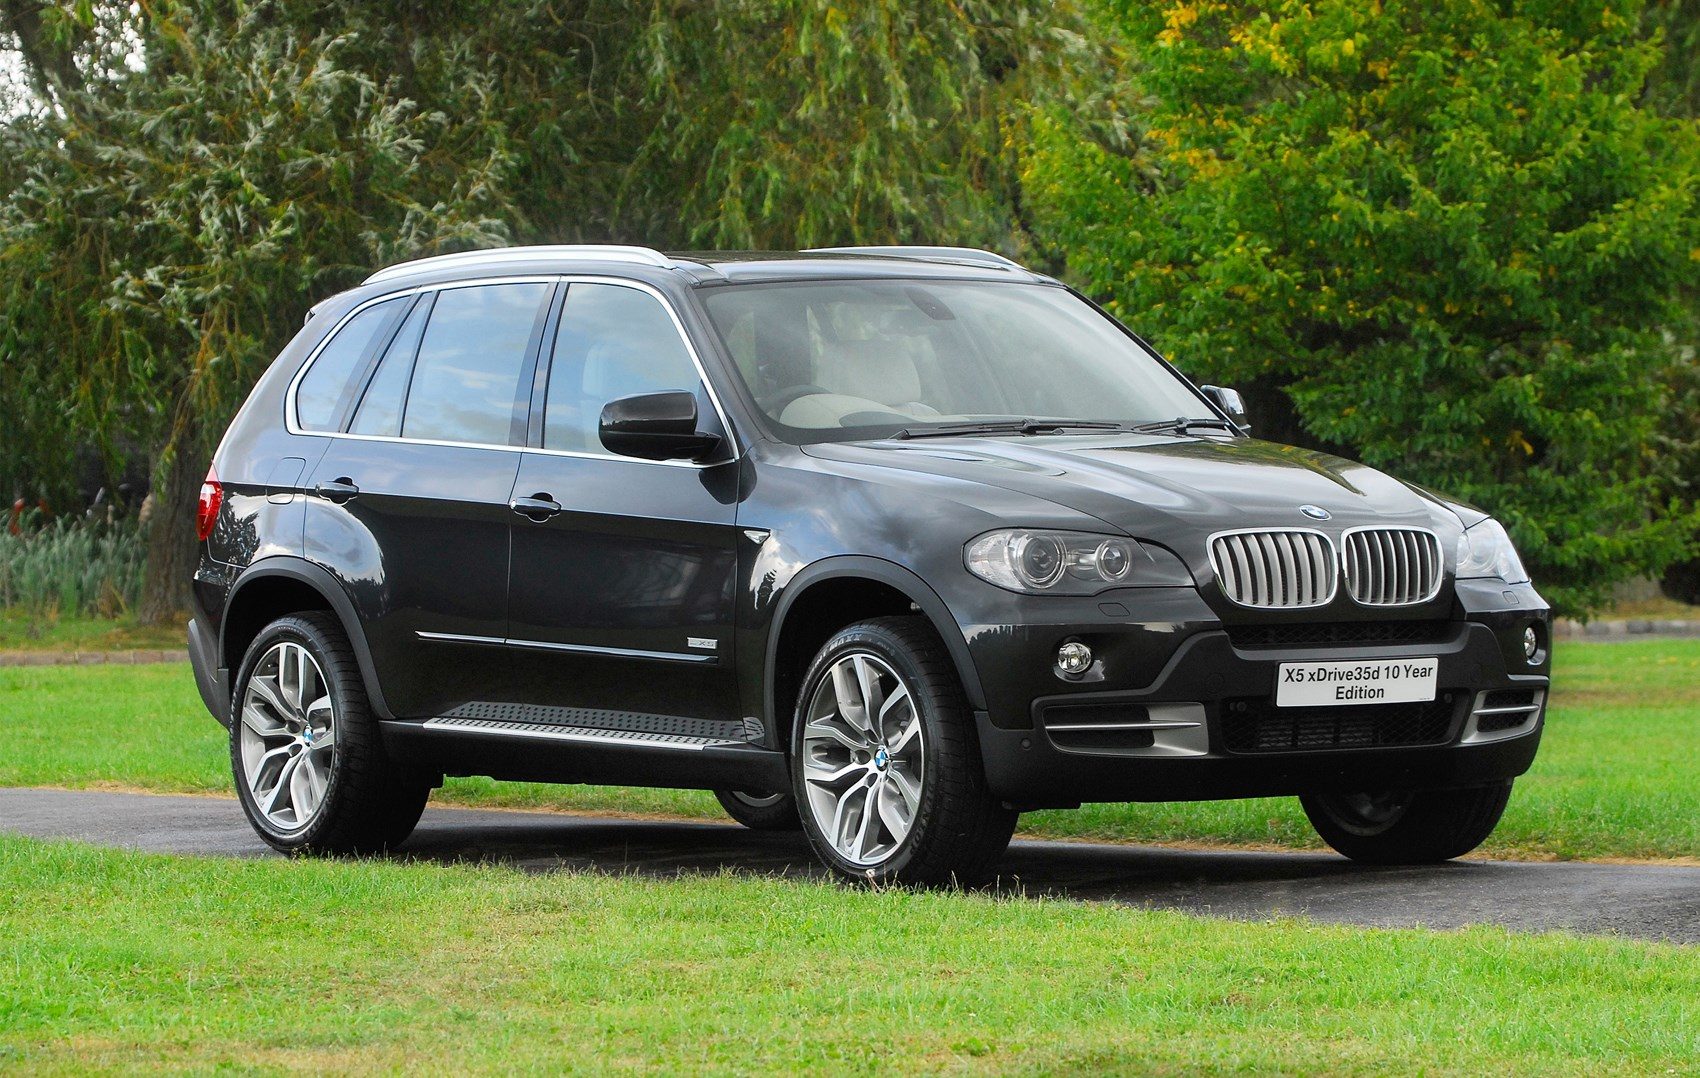 Bmw x5 estate 2007 2013 photos parkers voltagebd Image collections